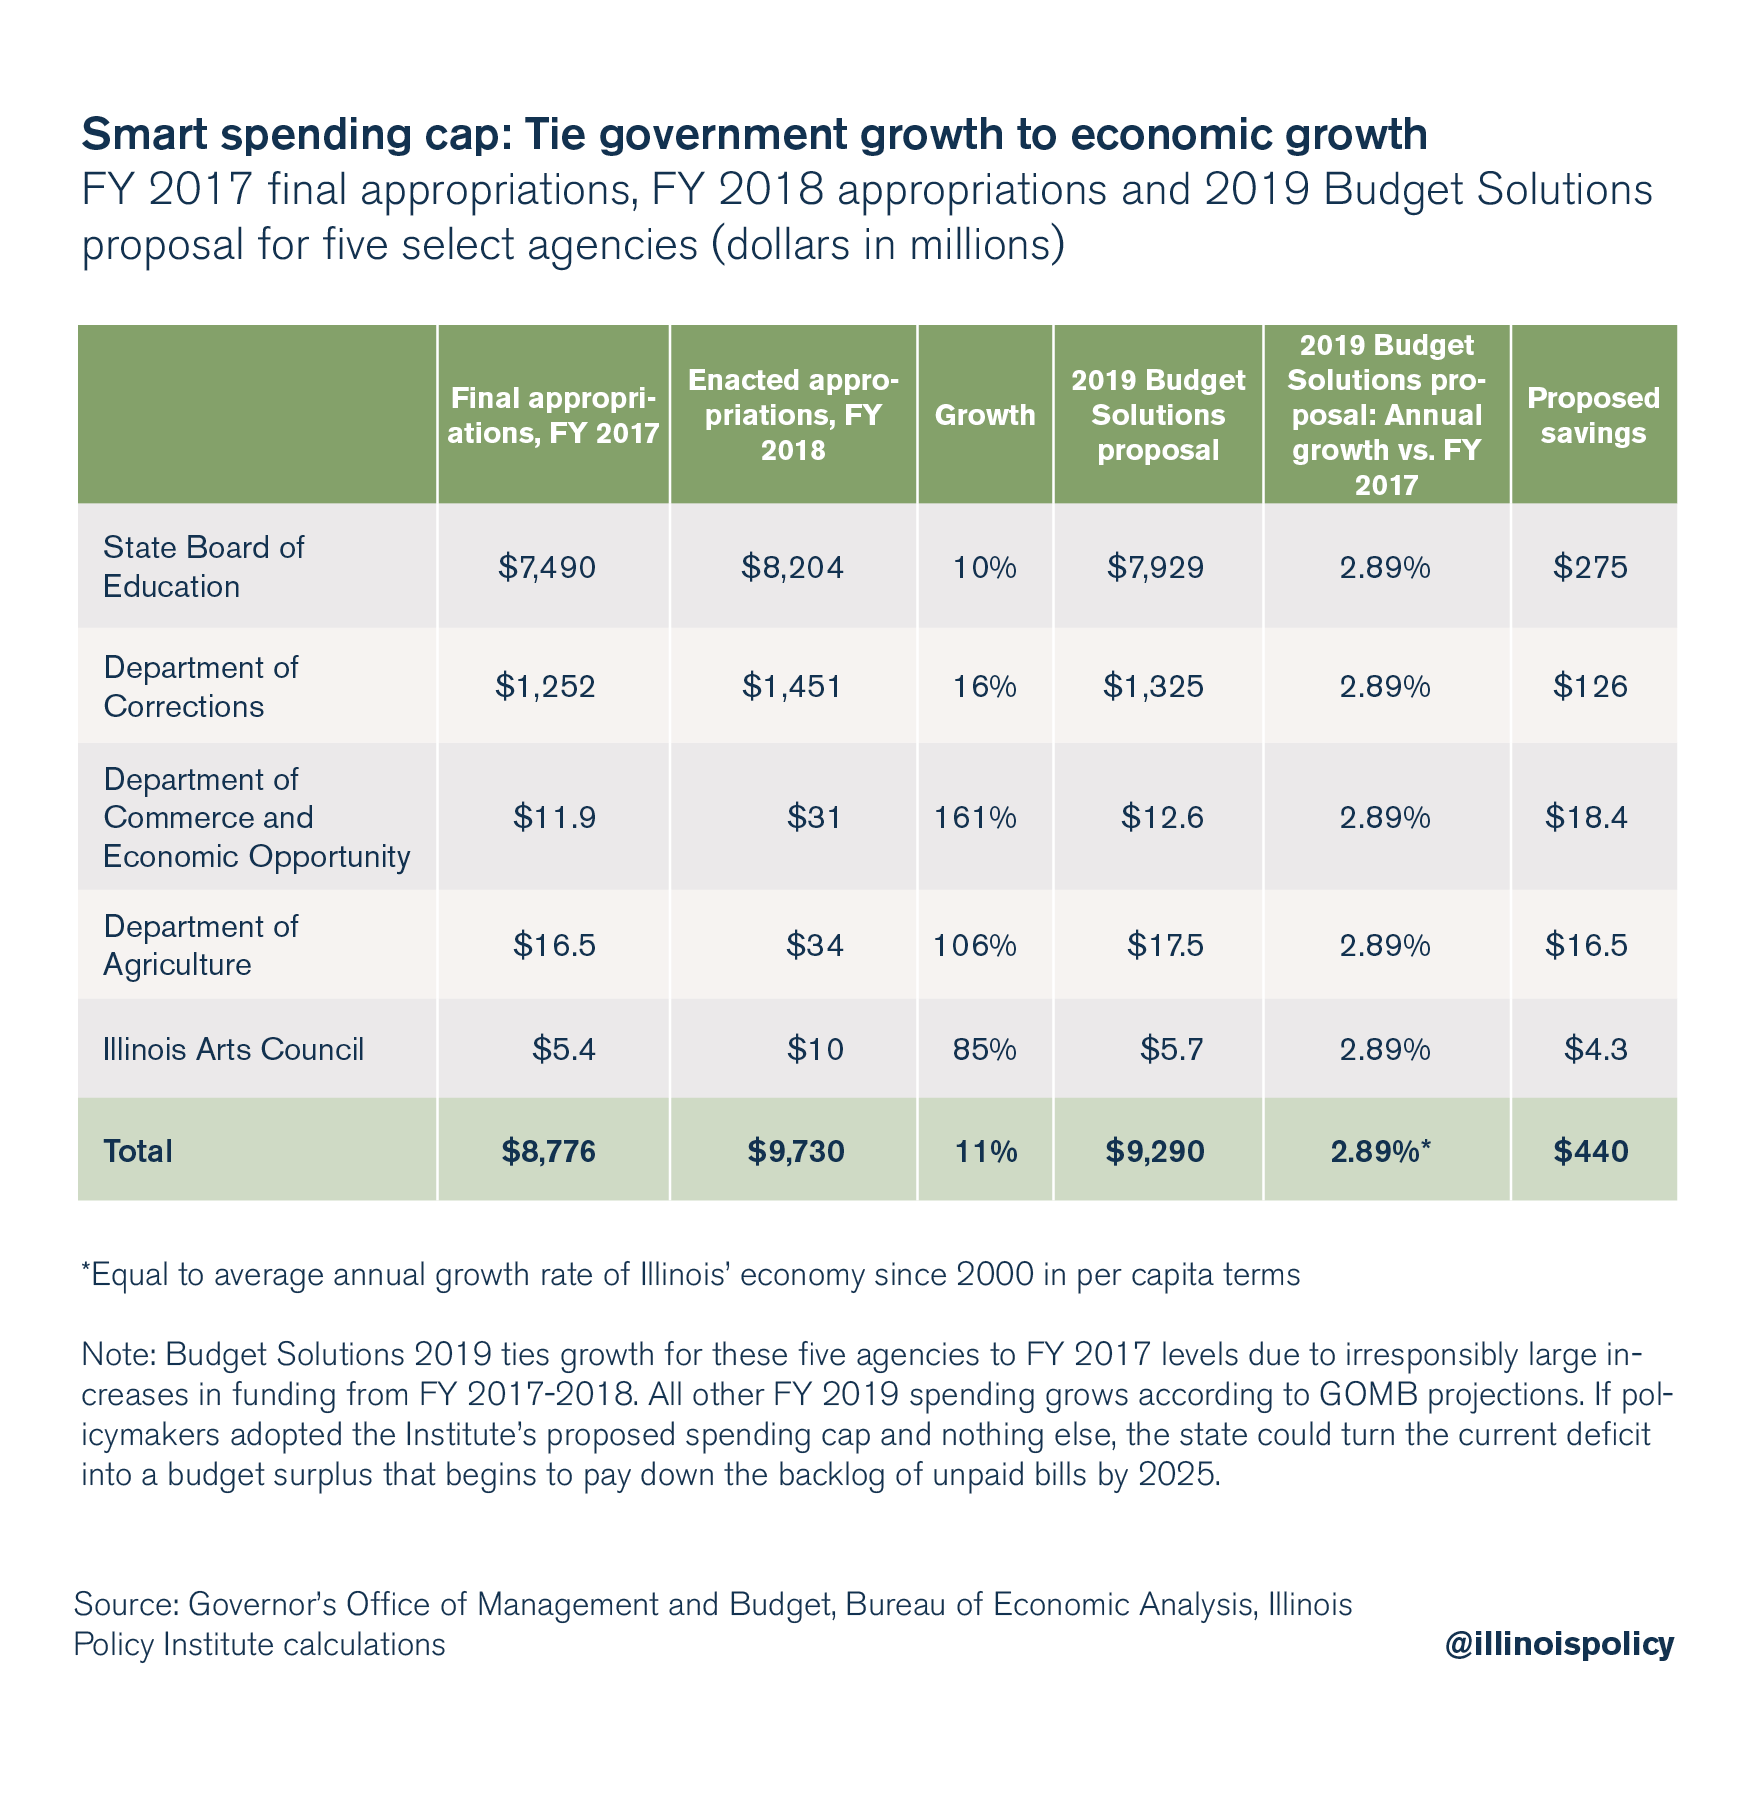 Smart spending cap: Tie government growth to economic growth